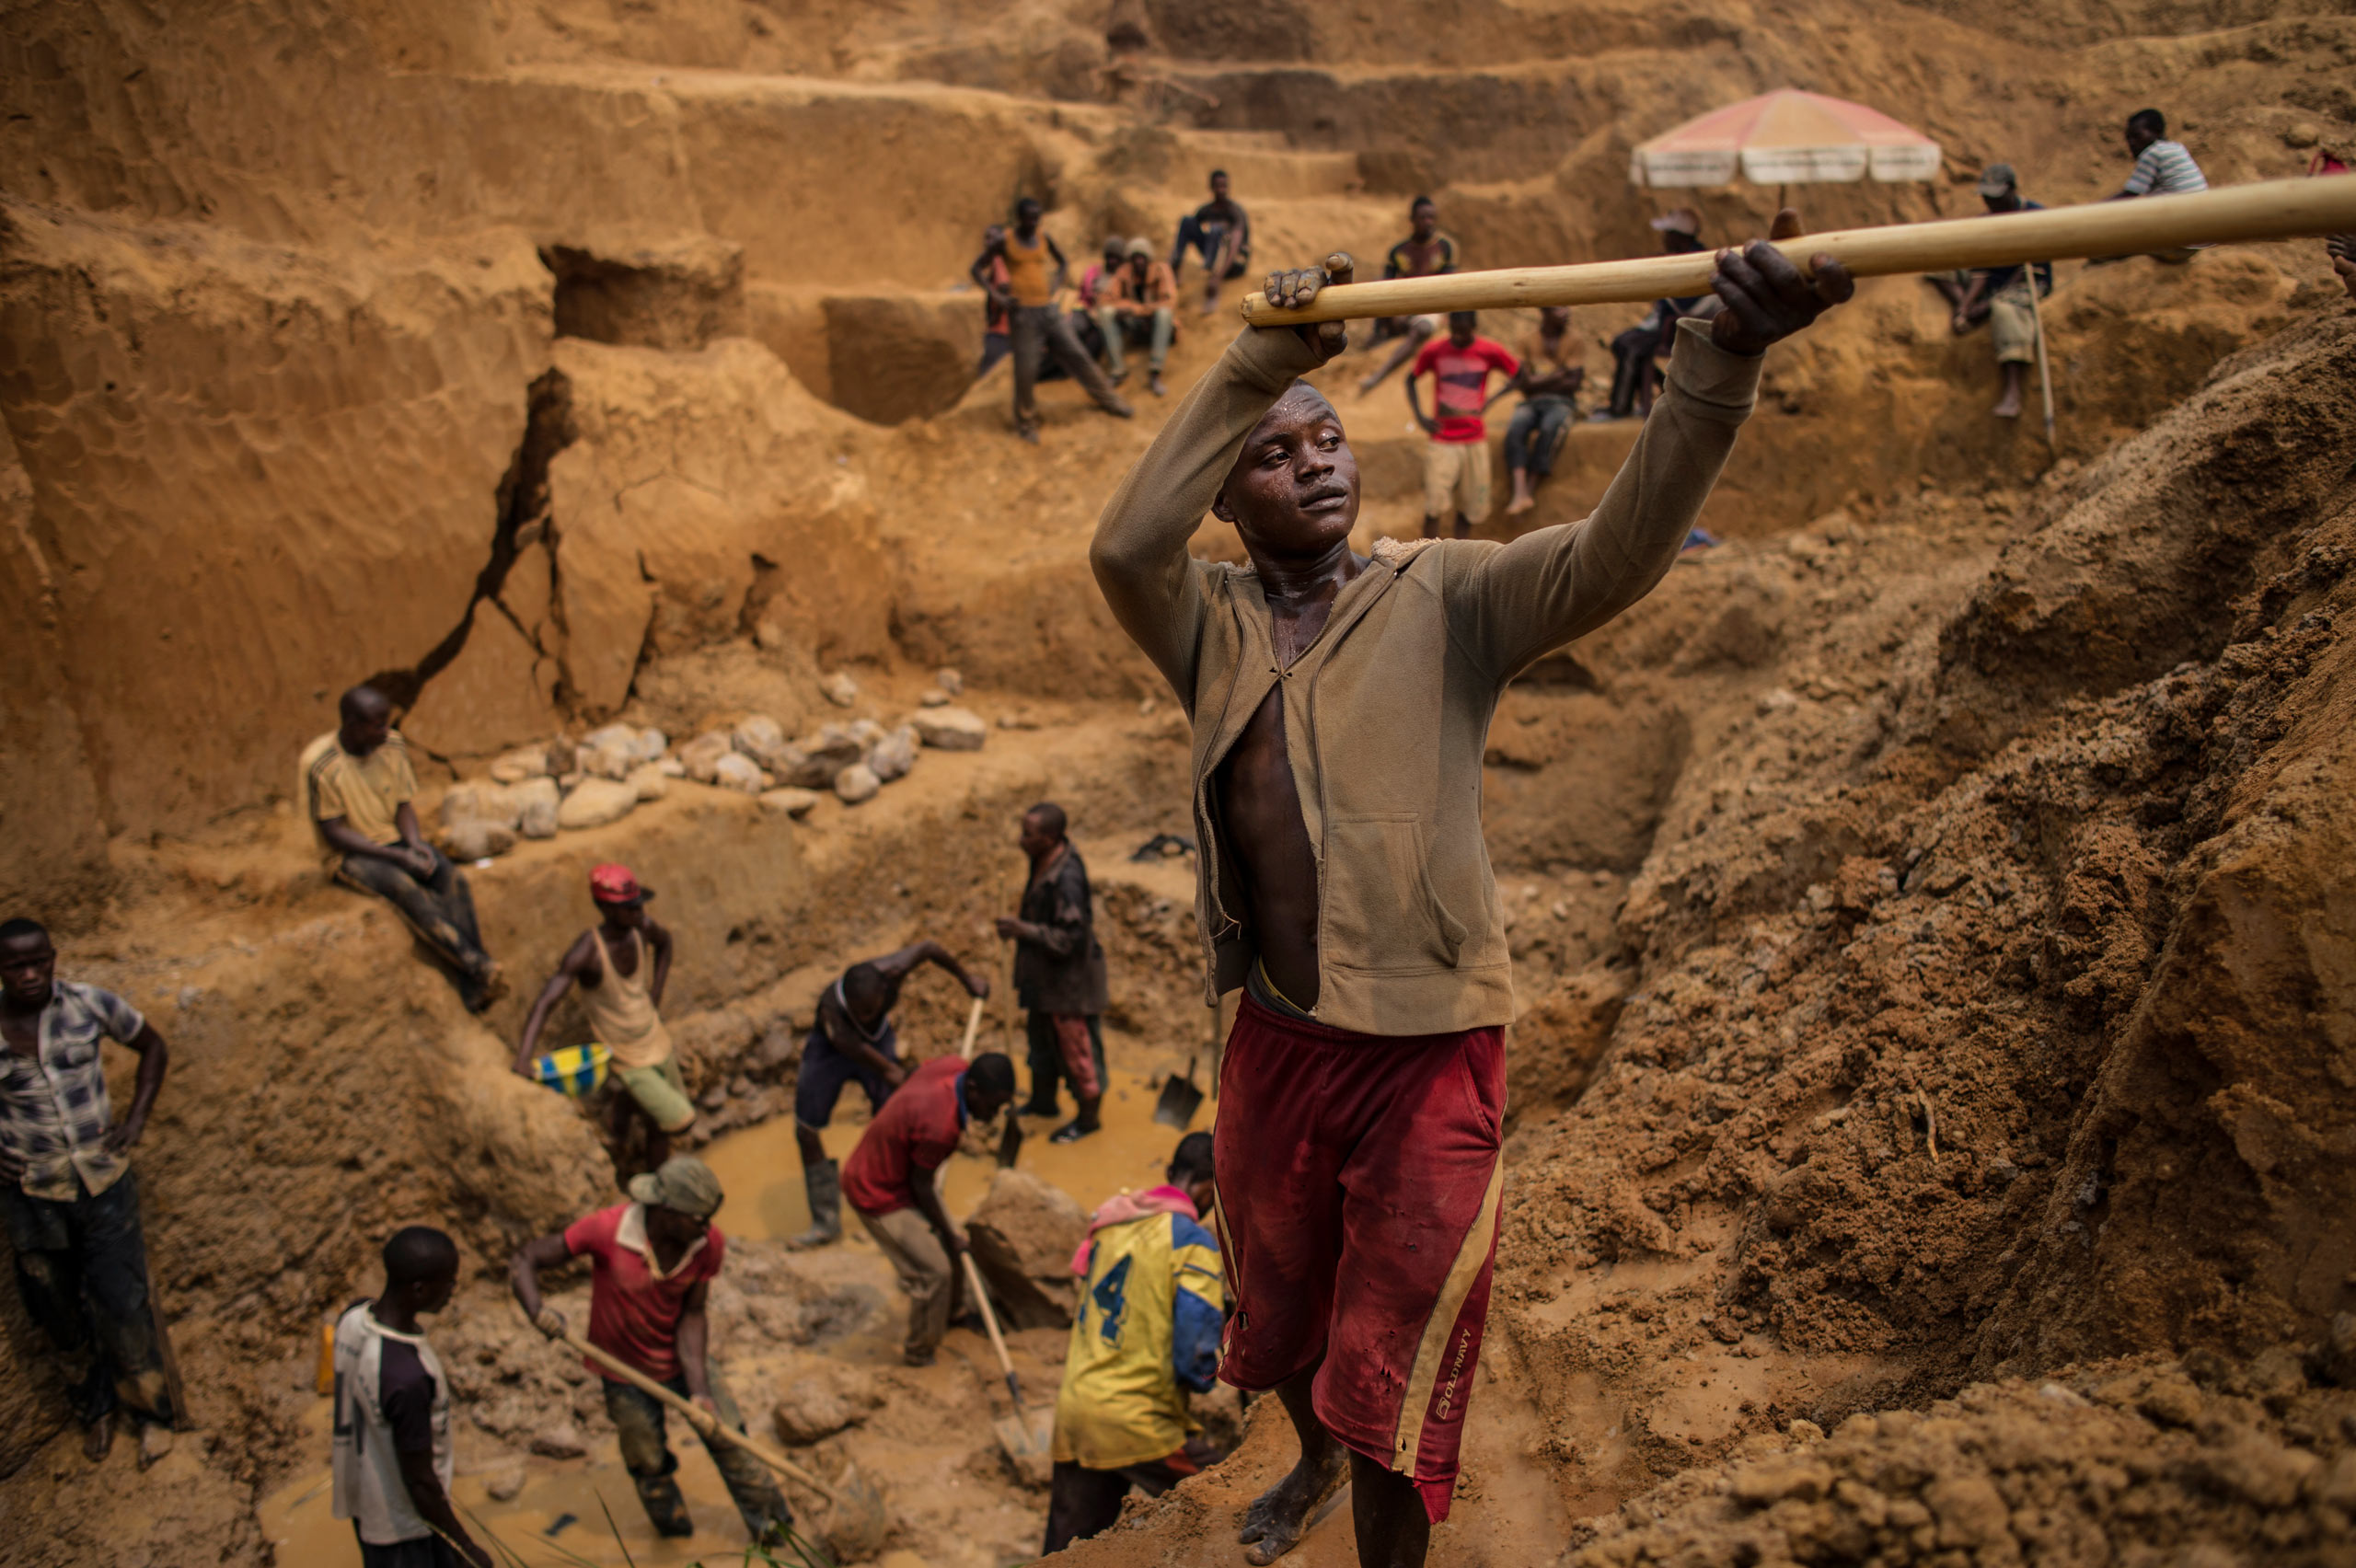 A Congolese miner works in an artisanal mine in the southwest Democratic Republic of                                   Congo. Aug. 9, 2015.